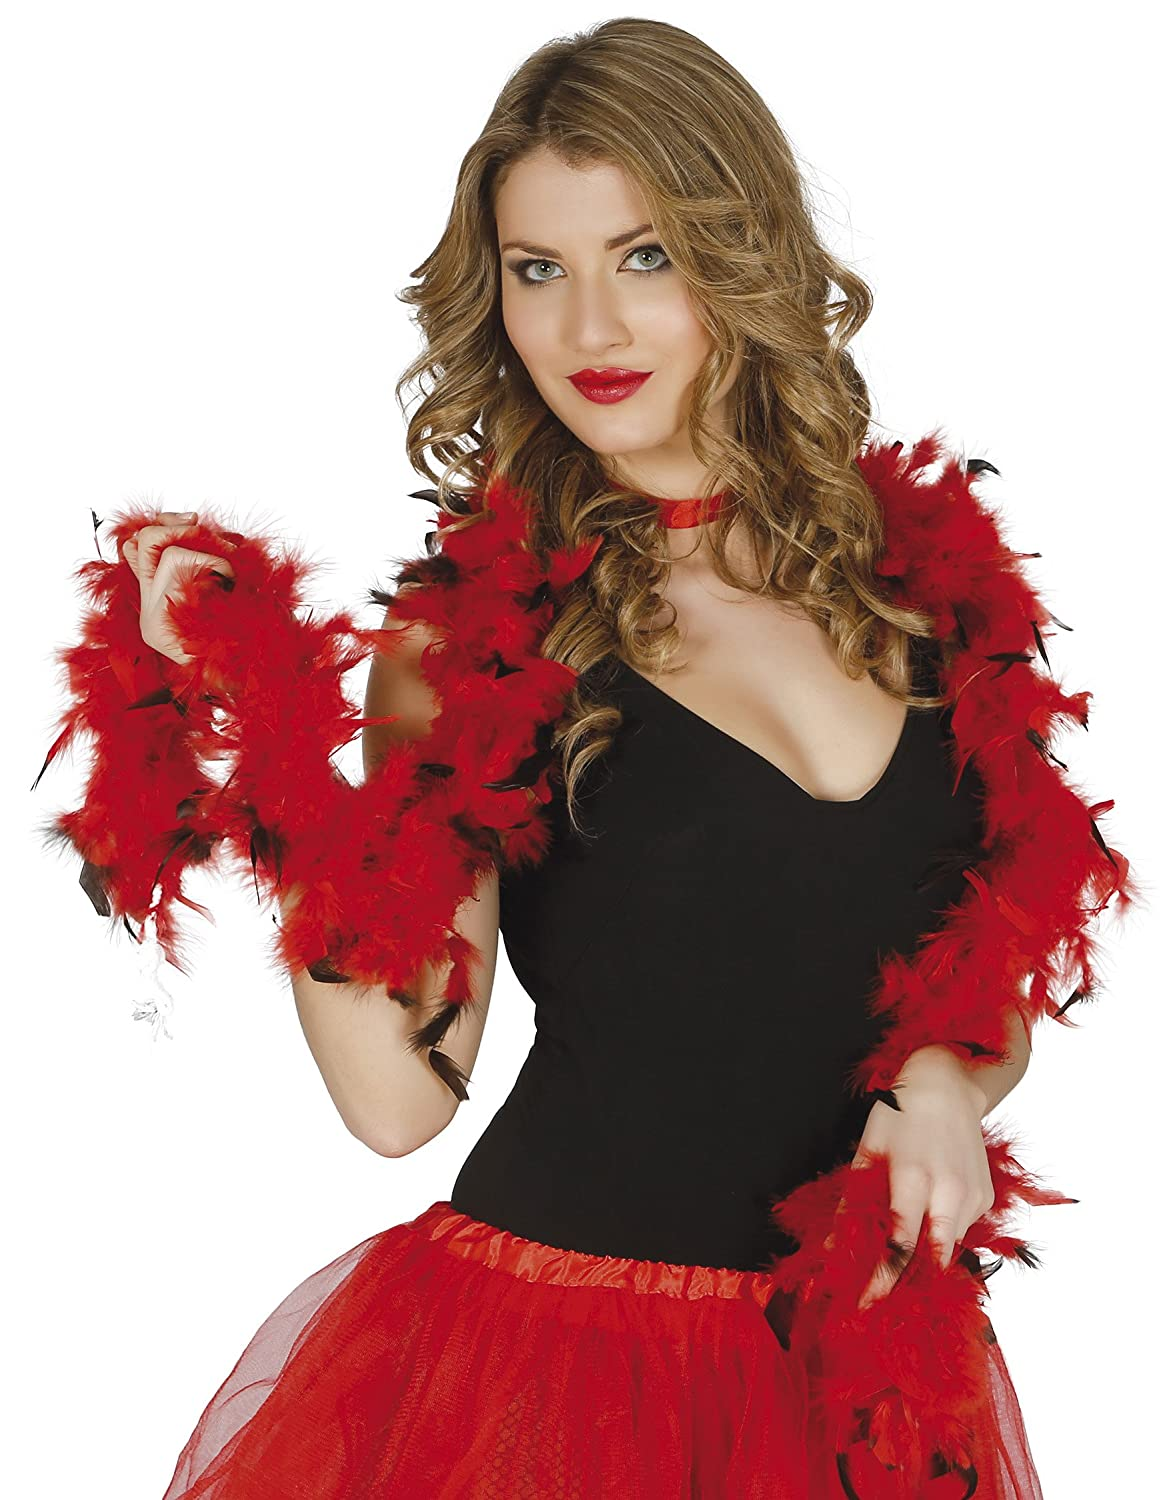 Guirca Fiestas GUI16351 – Black and Red Feather Boa, 1.80 m 40 Gra 1.80 m 40 Gra Müller & Küssner GbR 16351.0